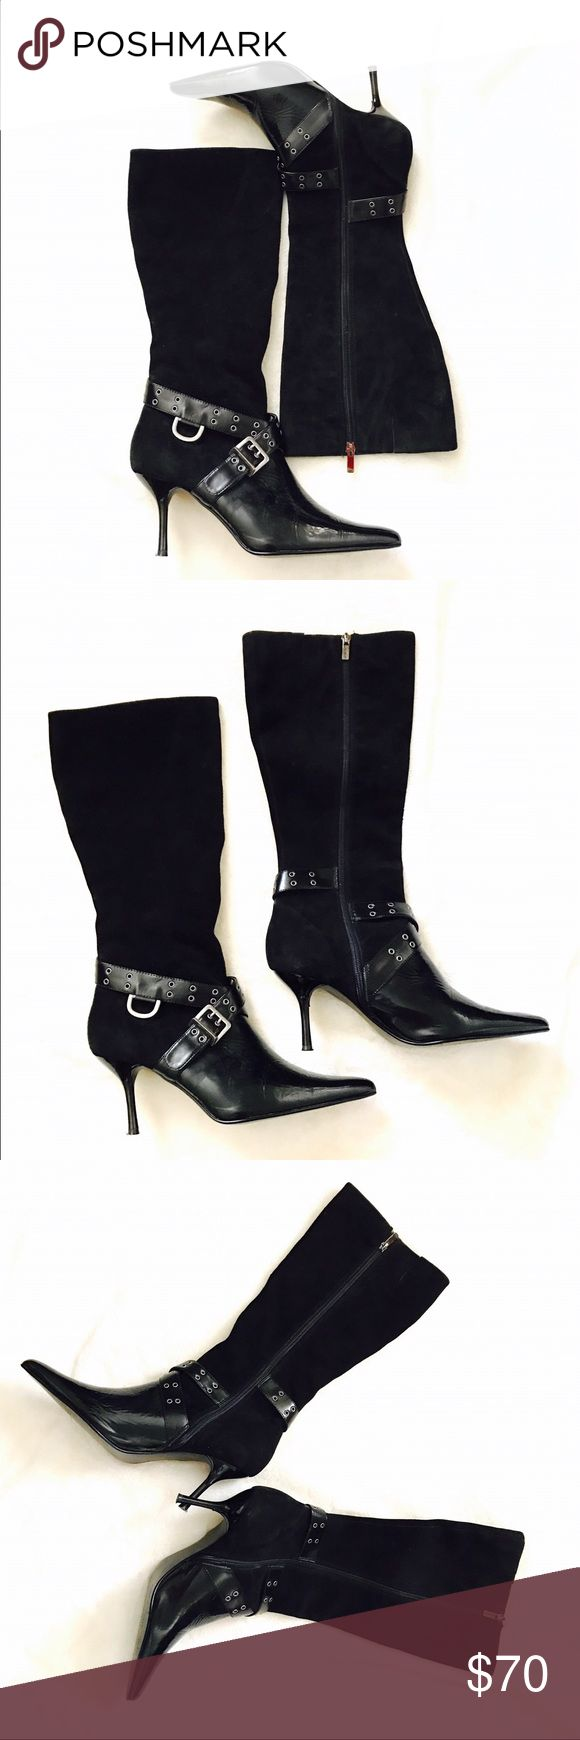 Colin Stuart Suede Pointed-toe Boots Very chic boots from Colin Stuart. Black suede and patent leather. The buckle and criss cross details are so gorgeous. Side zip up closure. In excellent used condition. Colin Stuart Shoes Heeled Boots